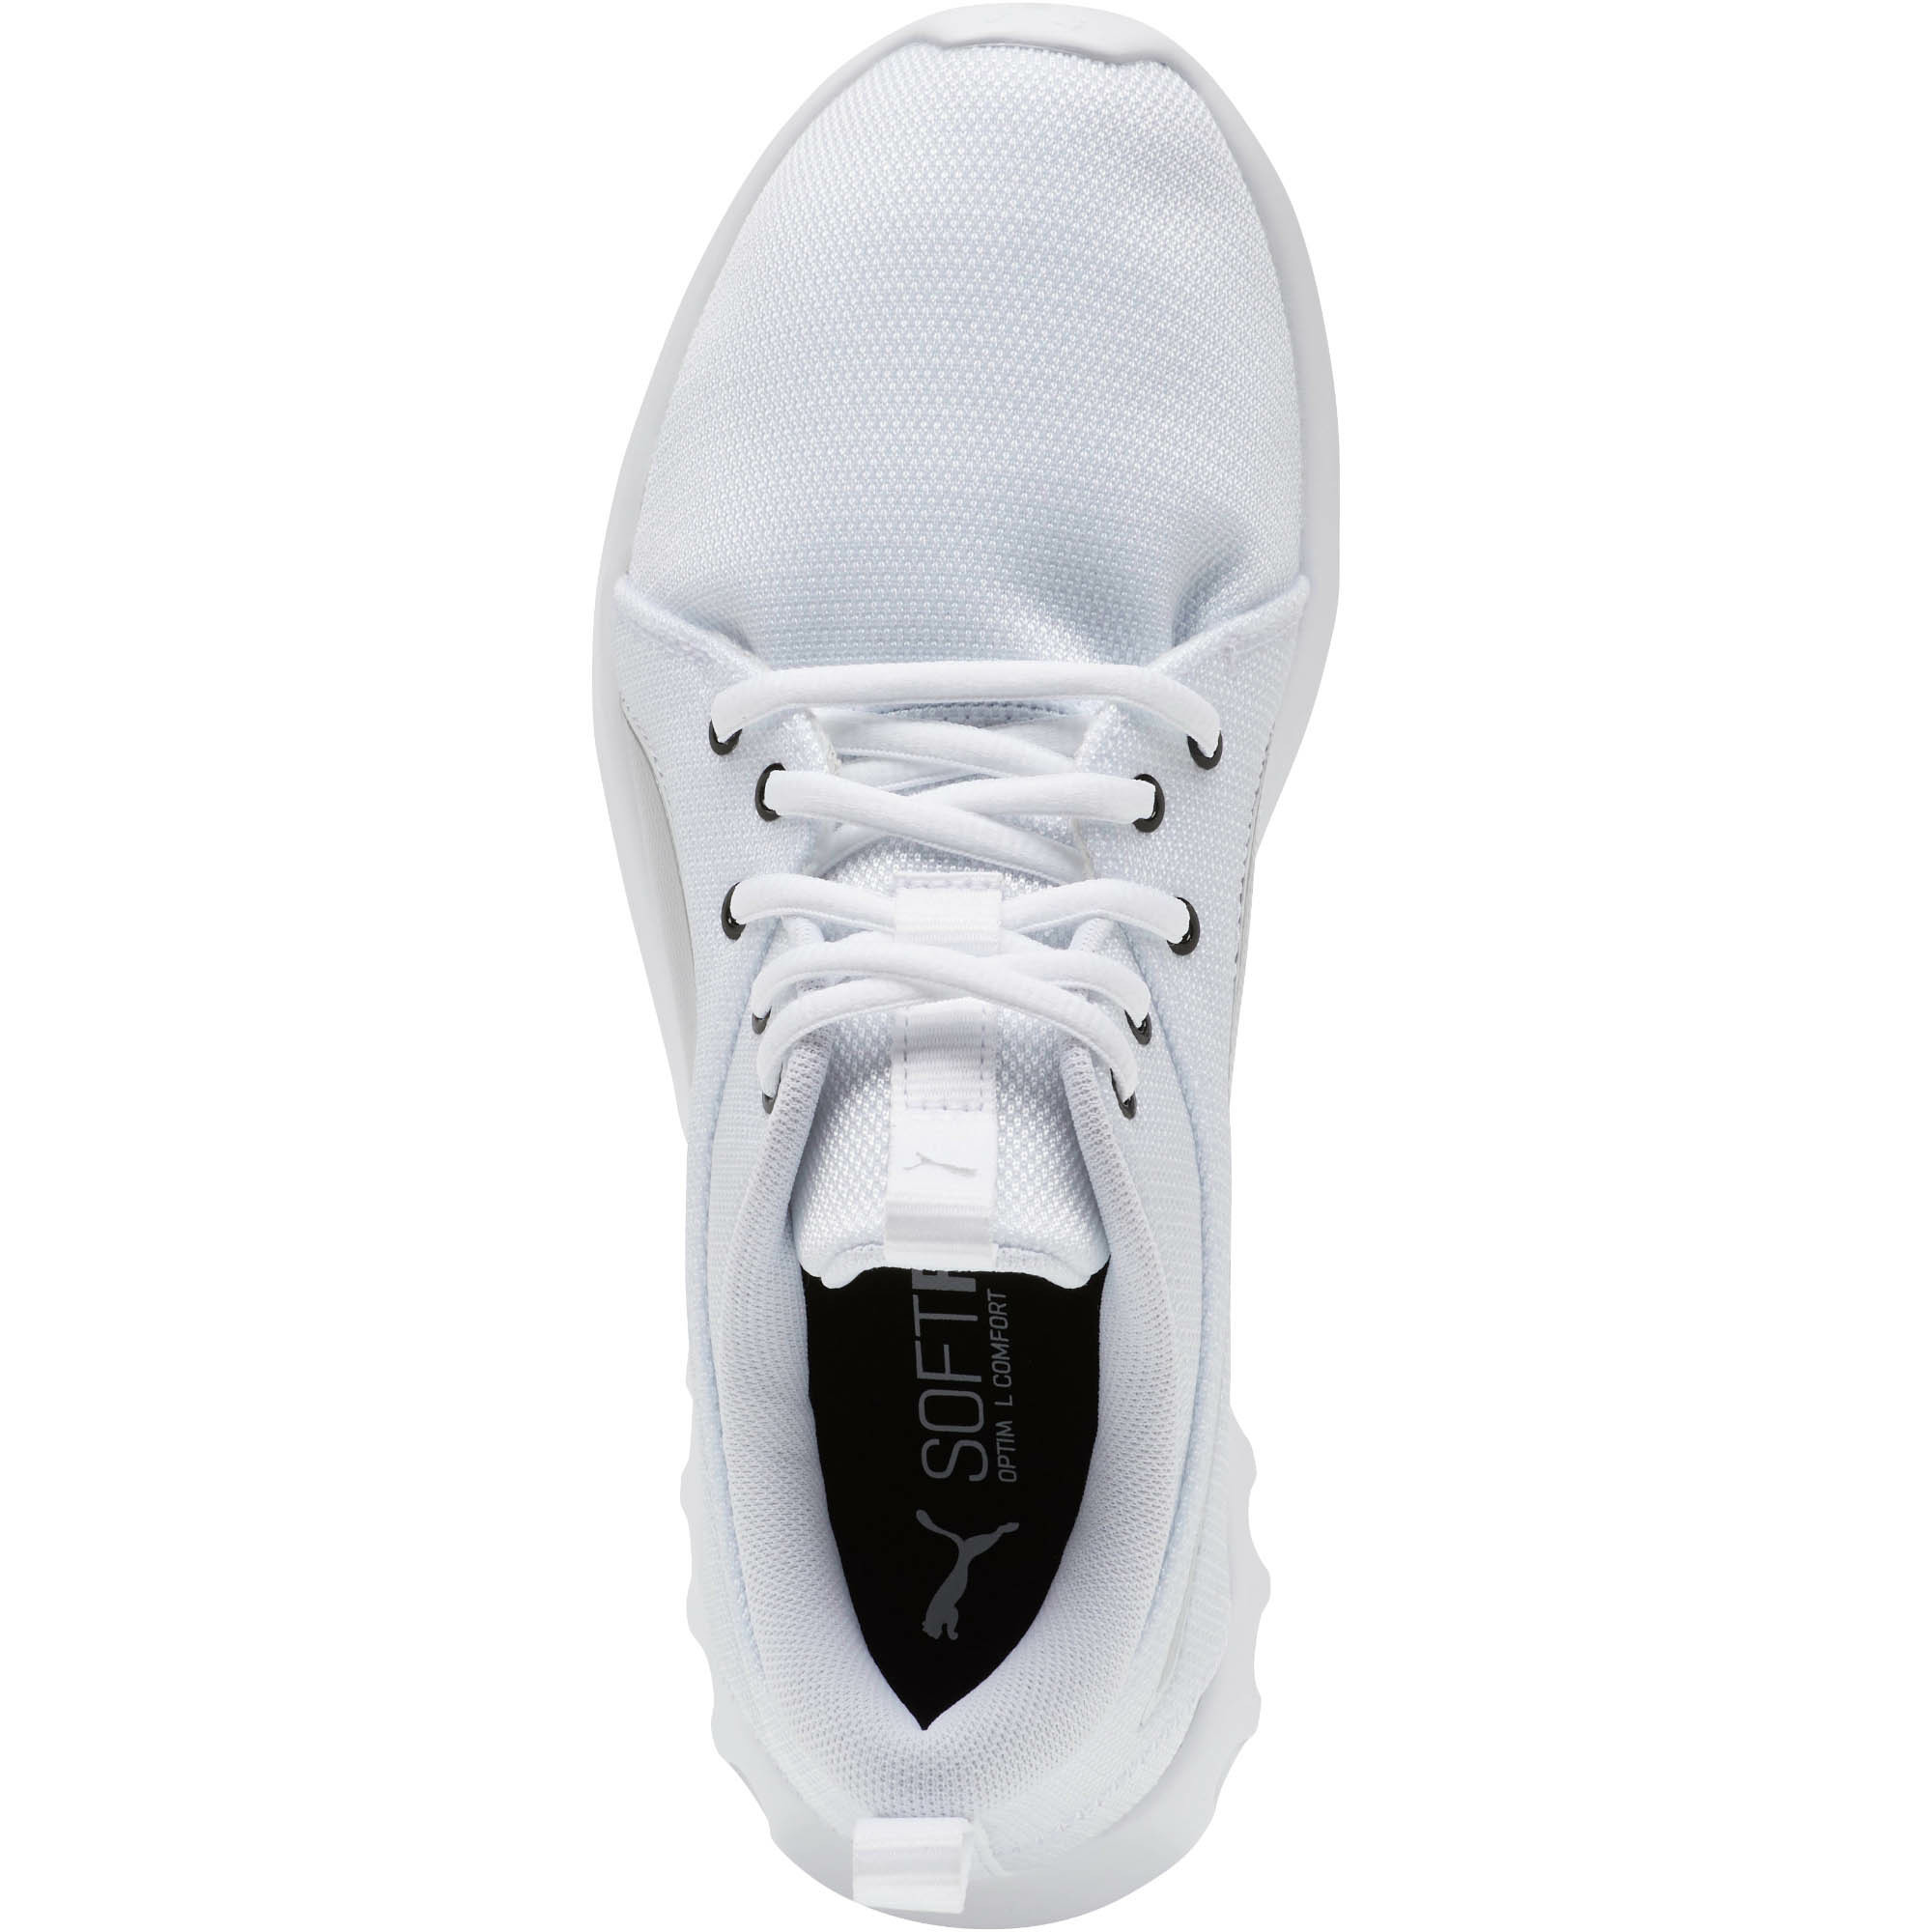 PUMA-Women-039-s-Carson-2-Cosmo-Running-Shoes thumbnail 6